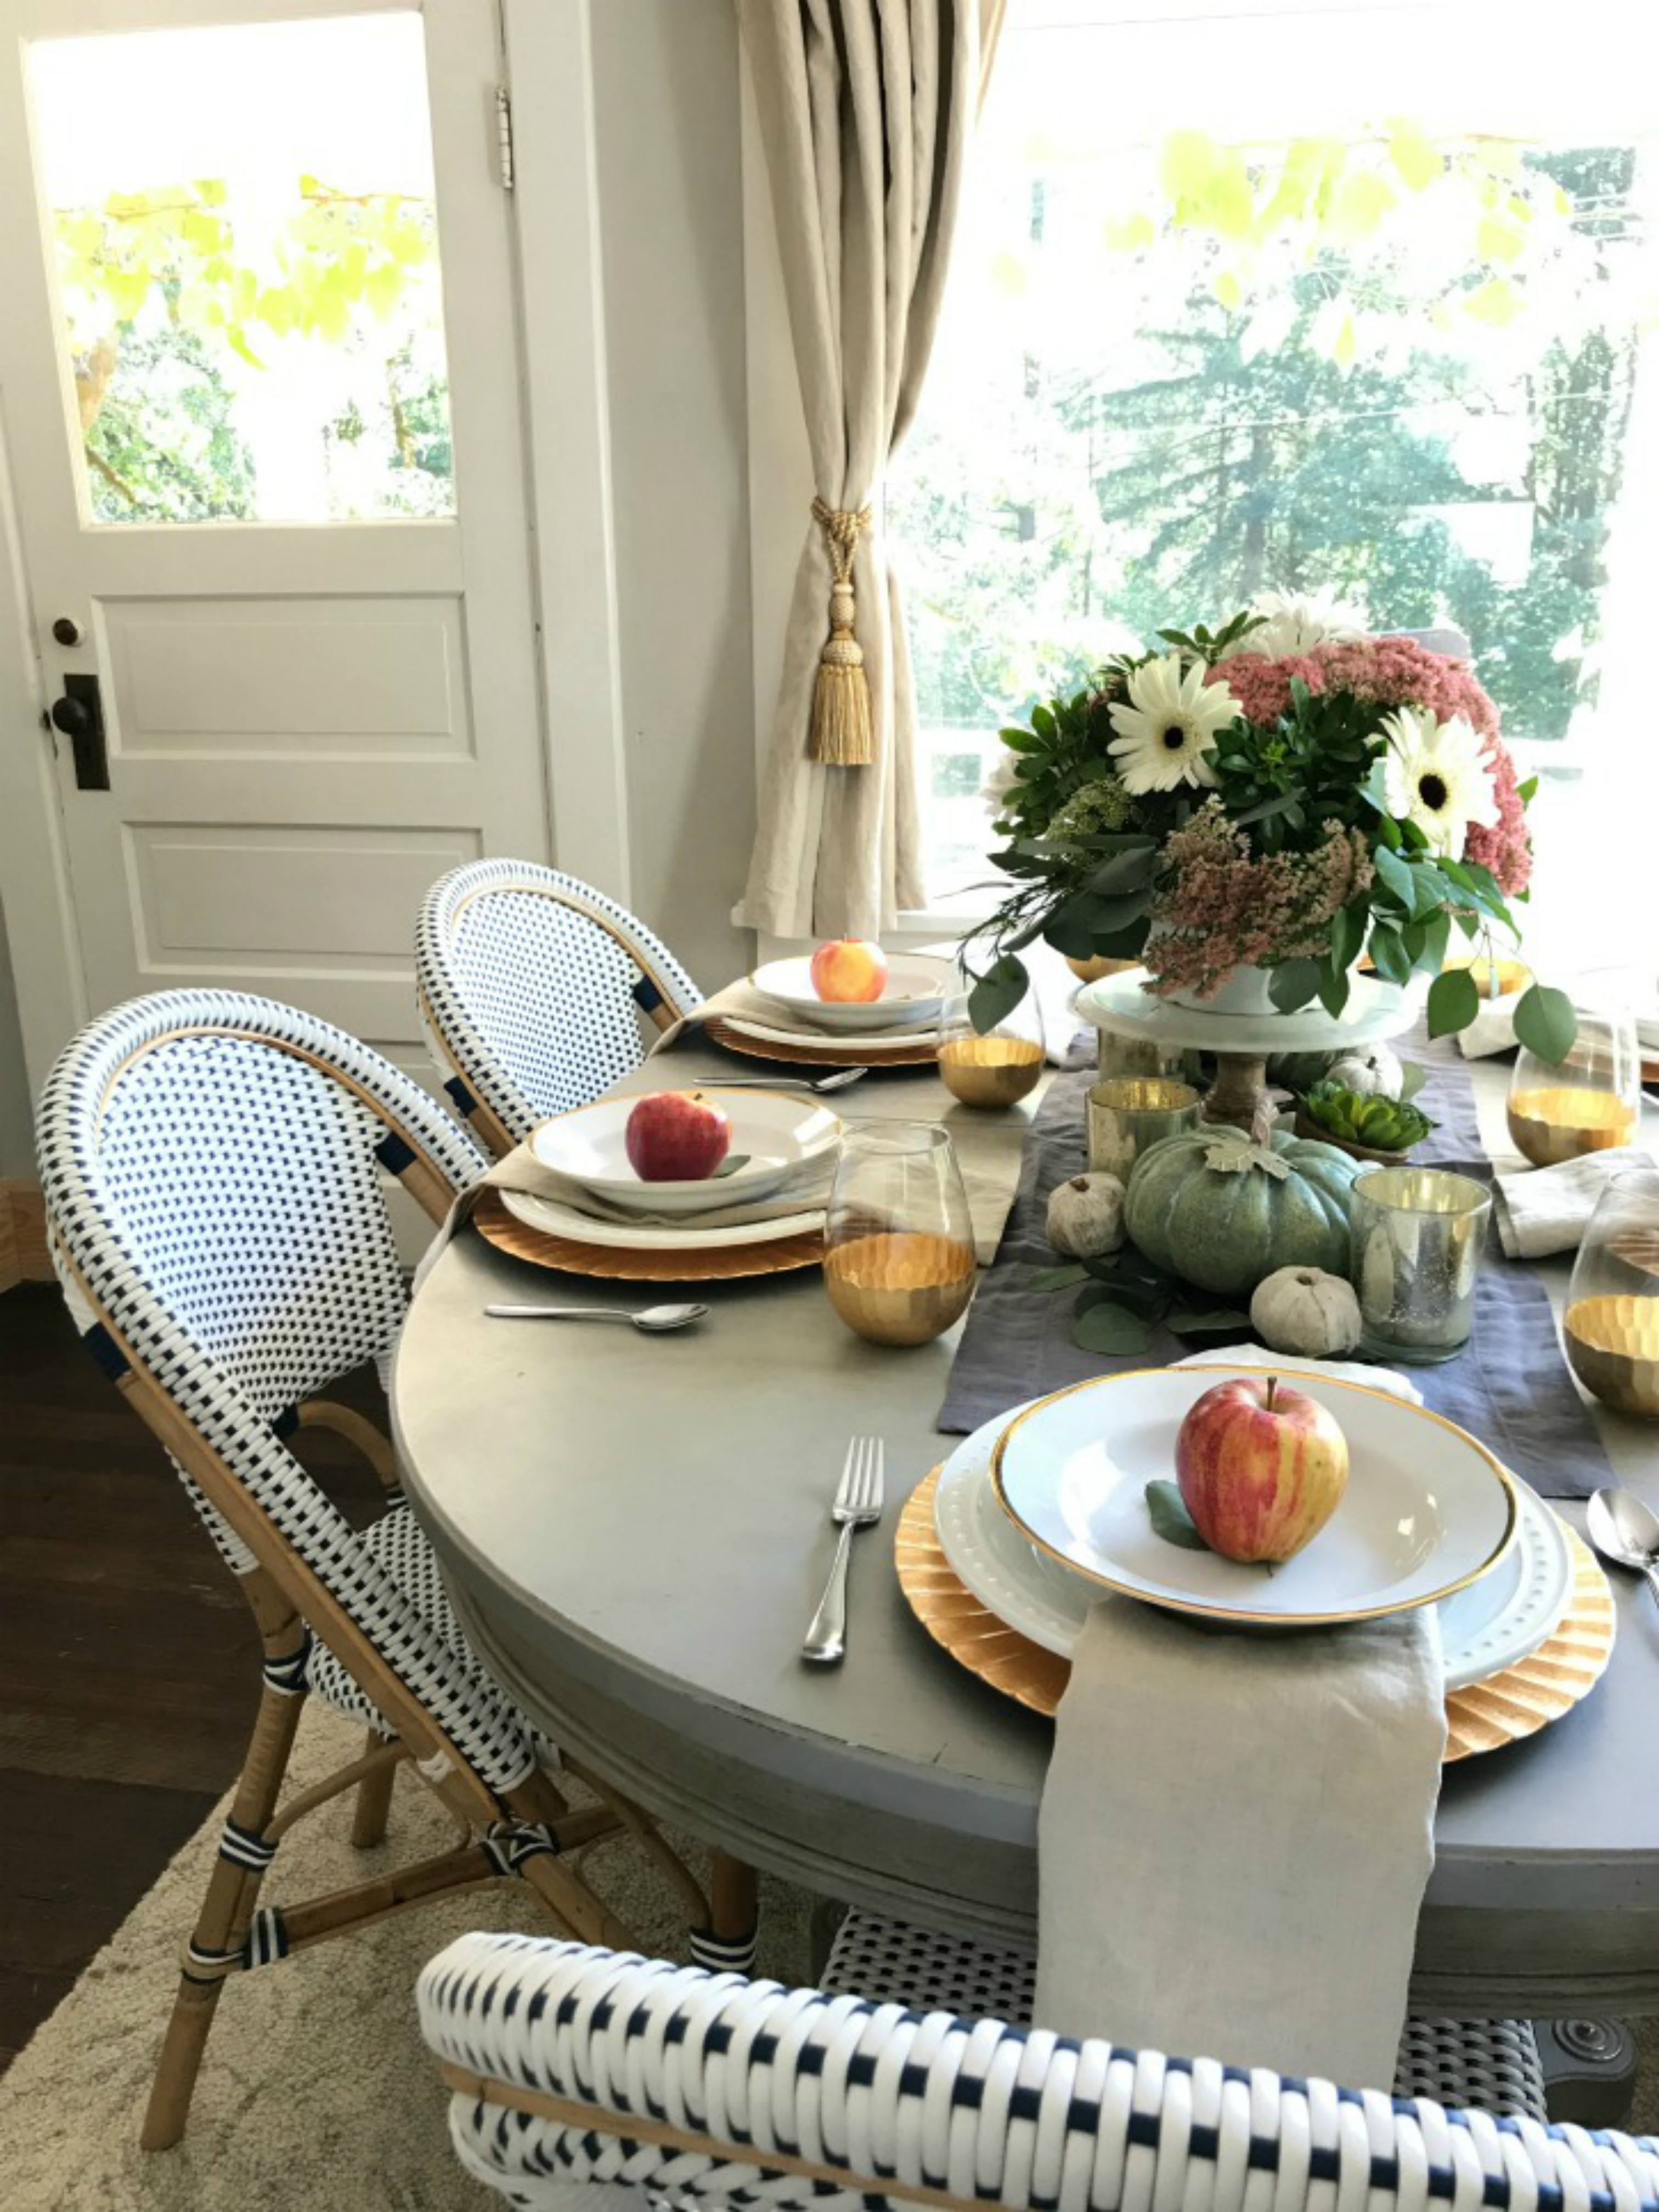 Our Thanksgiving Table with are Favorite Stuffing